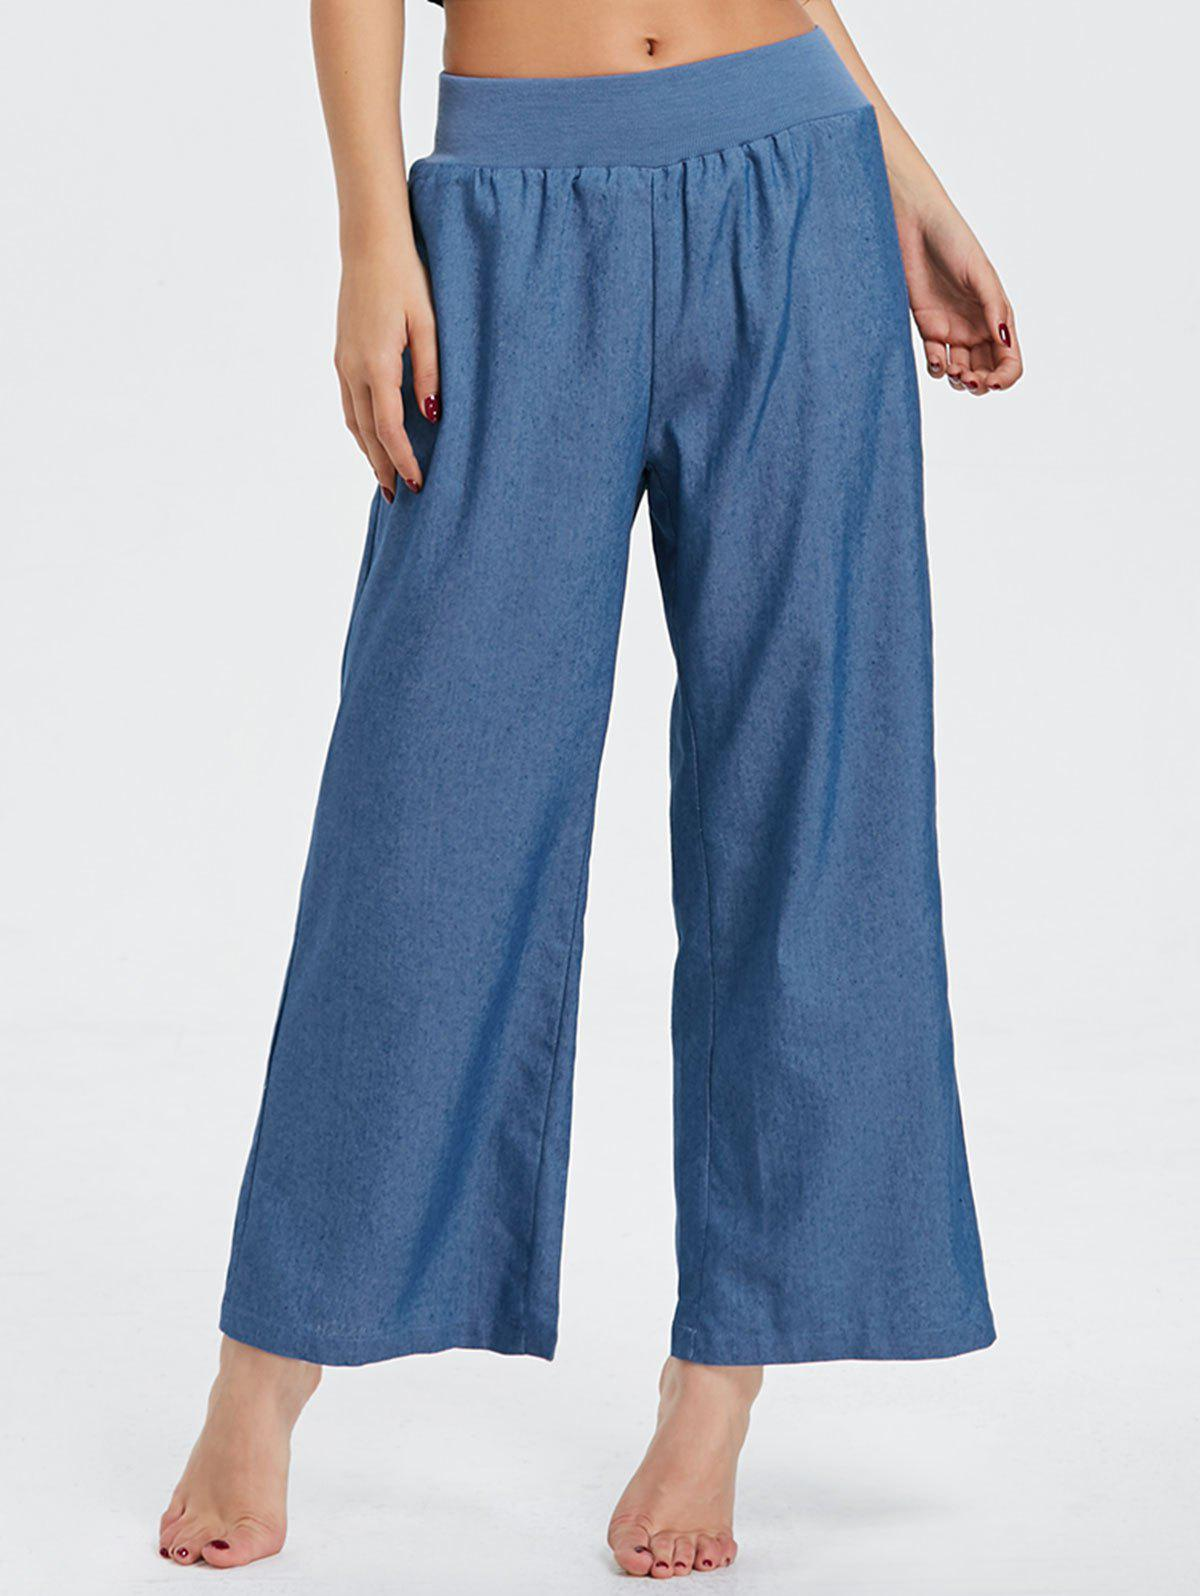 Wide Leg Elastic Waist Denim Pants - BLUE XL